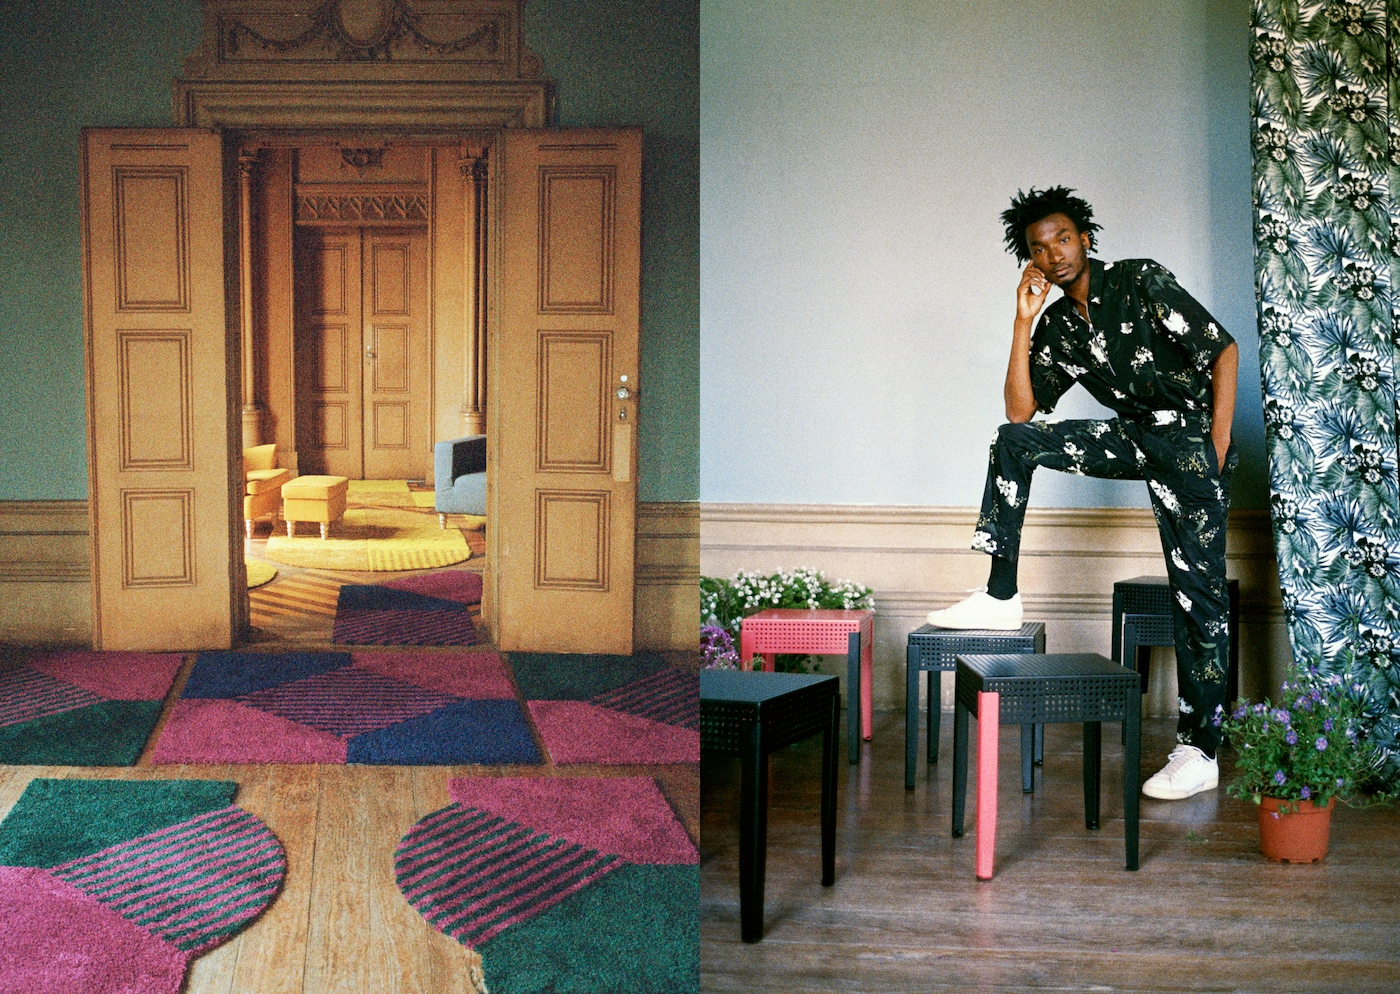 Big room with SJÄLVSTÄNDIG mix rugs in bold colours, plus a young man and six small square tables in metal mesh.